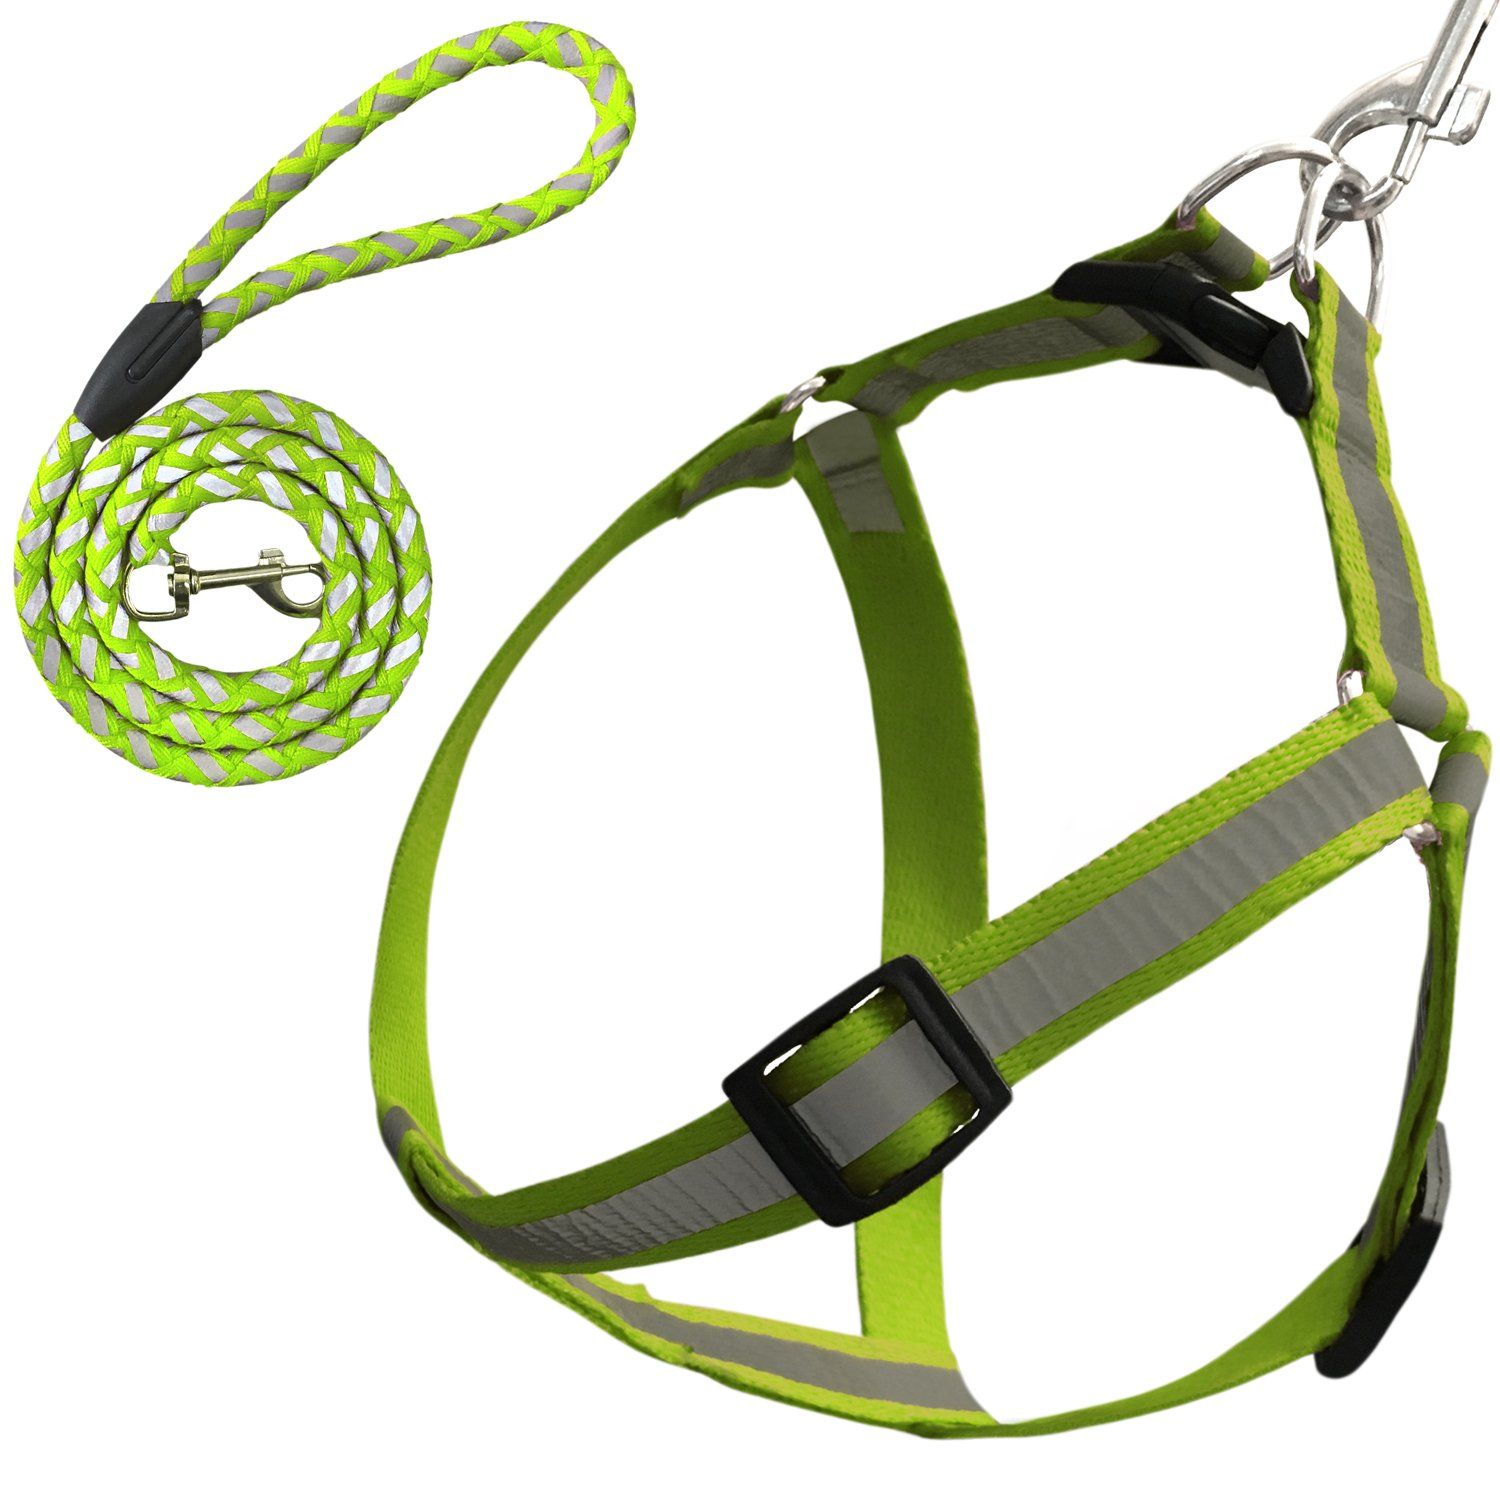 Green L Green L Zelten Dog Leash Harness Adjustable & Durable Leash Set & Heavy Duty Reflector Dog Leash Collar for Small, Medium and Large Dog, Perfect for Daily Training Walking Running (L, Green)